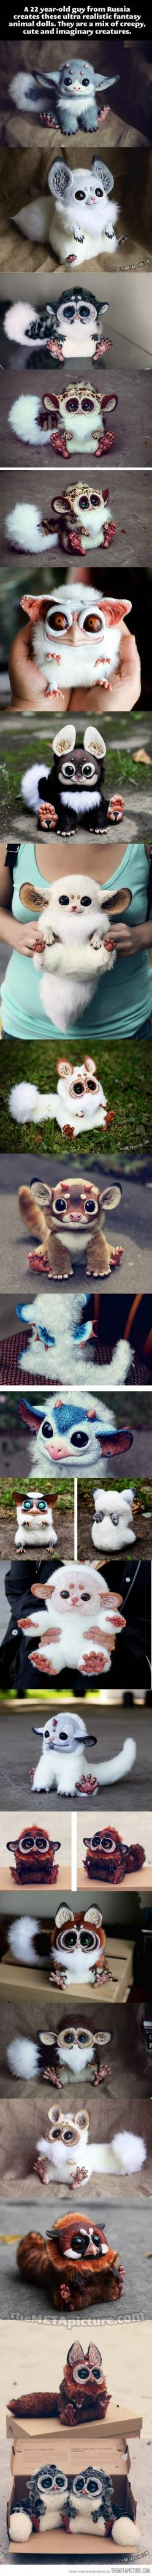 So cool: Http Santani Deviantart Com, Stuff, Awesome, Animal Dolls, Creatures, Random, Foxes, Ultra Realistic Fantasy